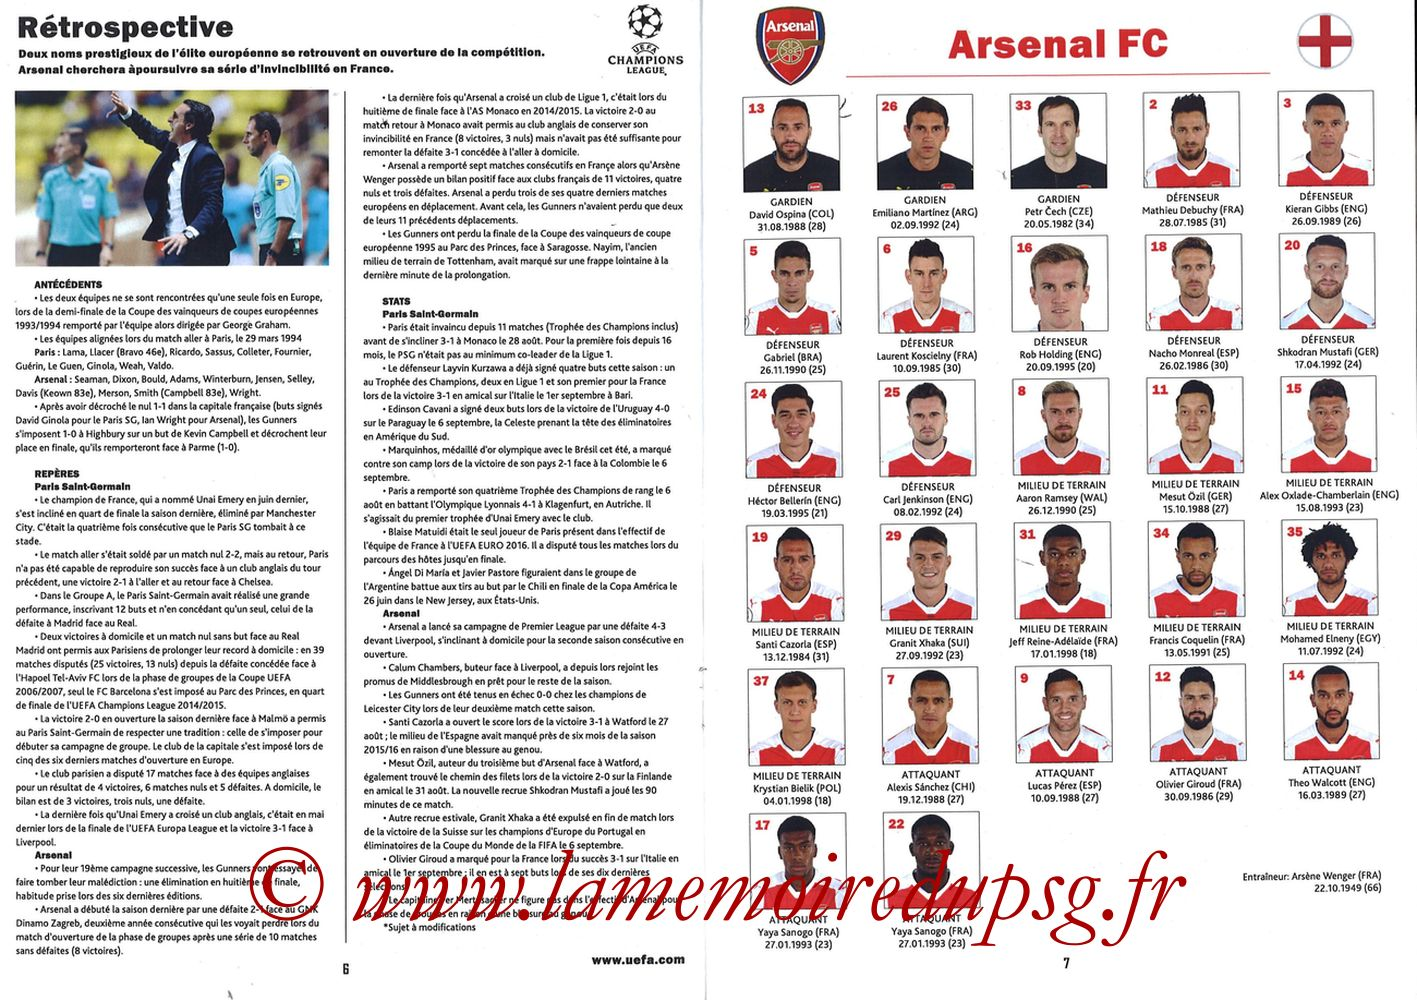 2016-09-13  PSG-Arsenal (1ère Poule C1, Programme pirate) - Pages 06 et 07